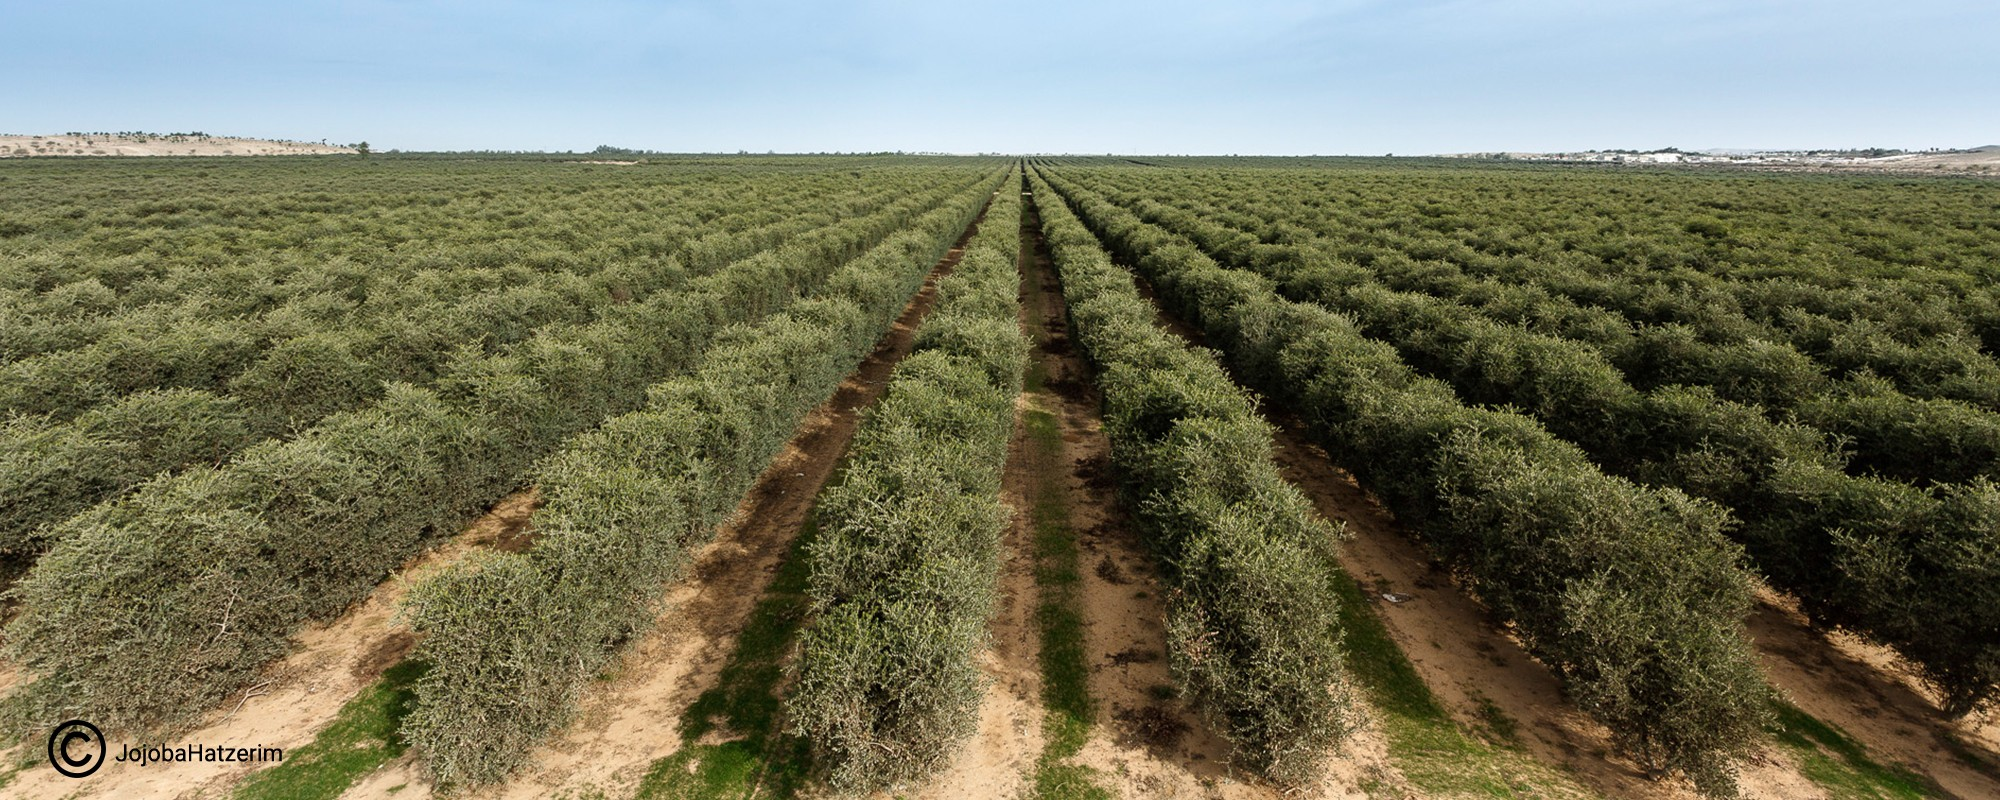 Jojoba Oil - Kibbutz Hatzerim